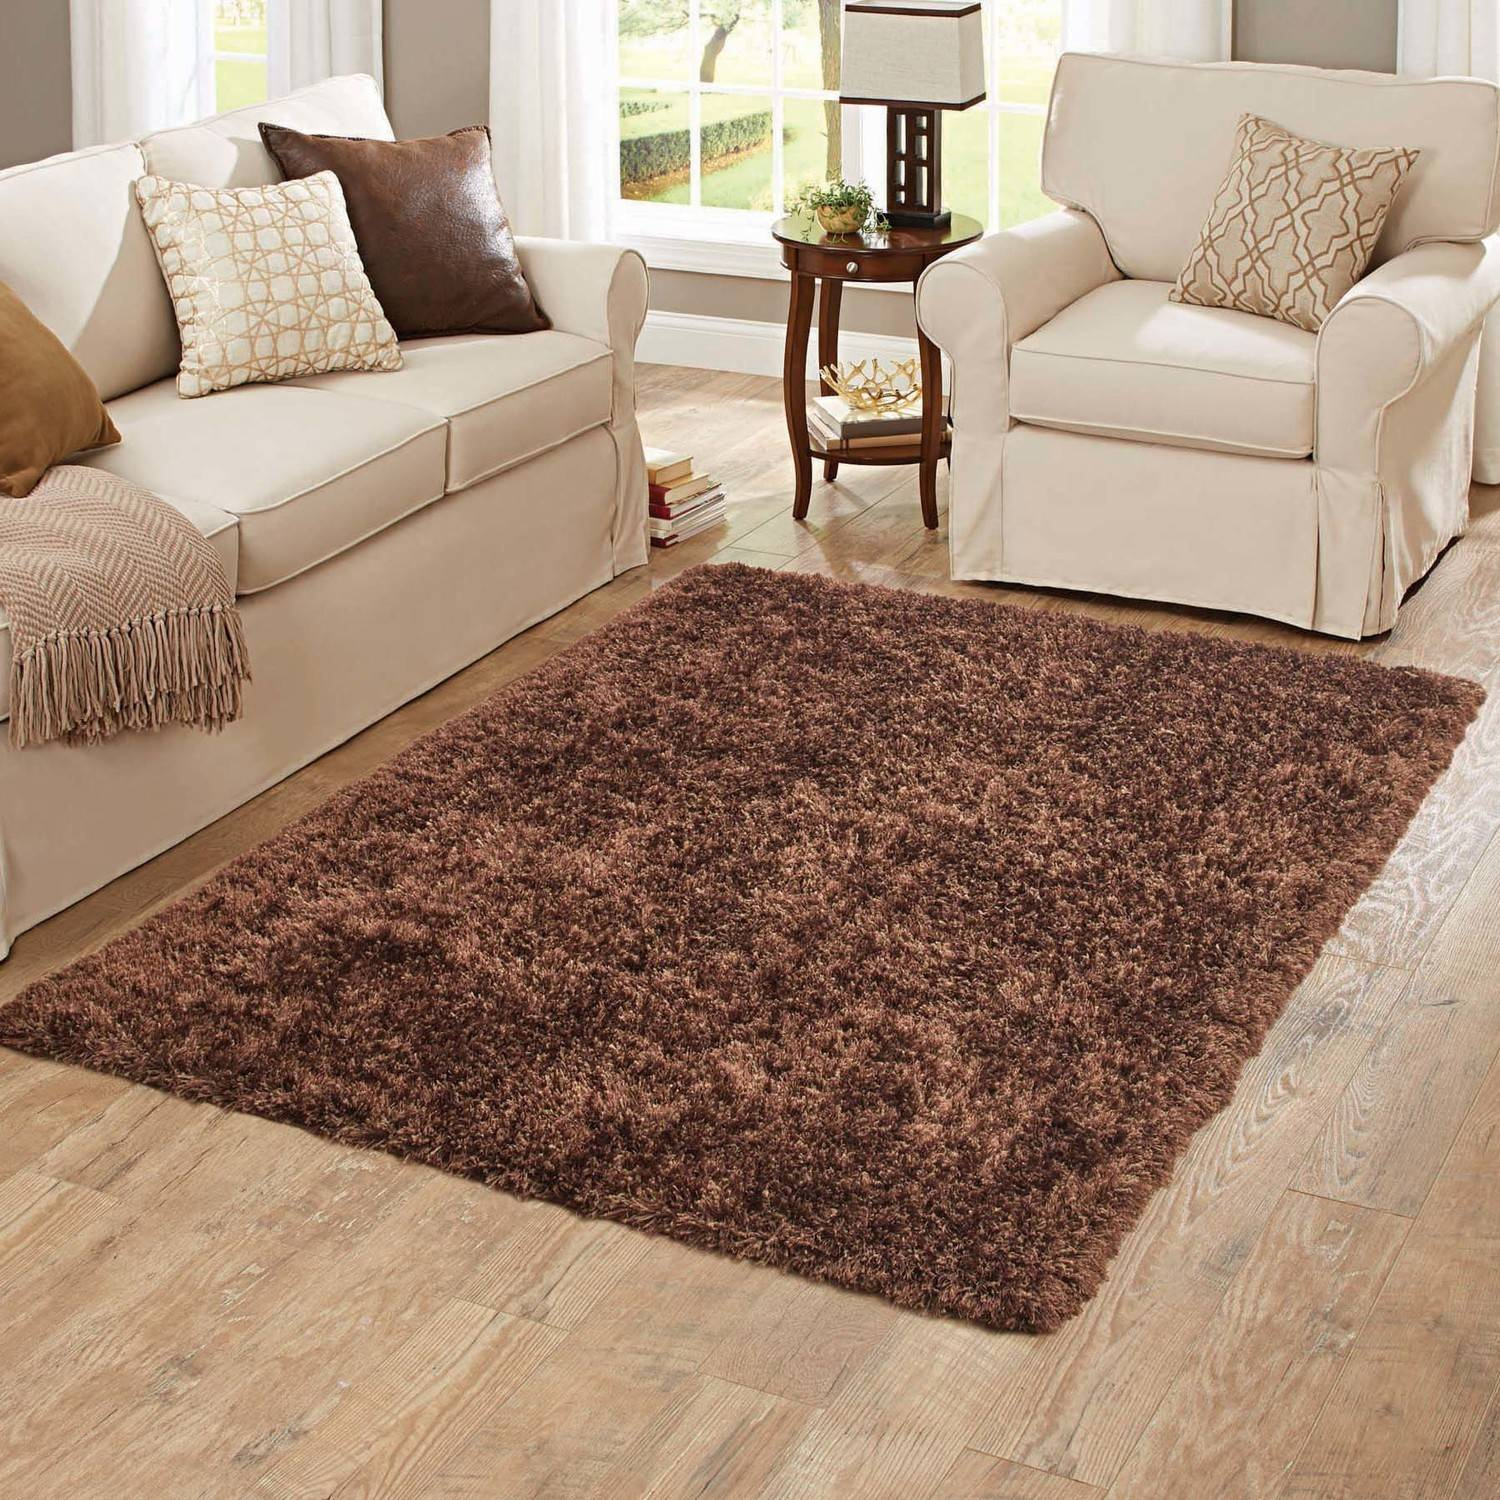 Plush Area Rugs Better Homes And Gardens Area Rug Brown Walmart Com